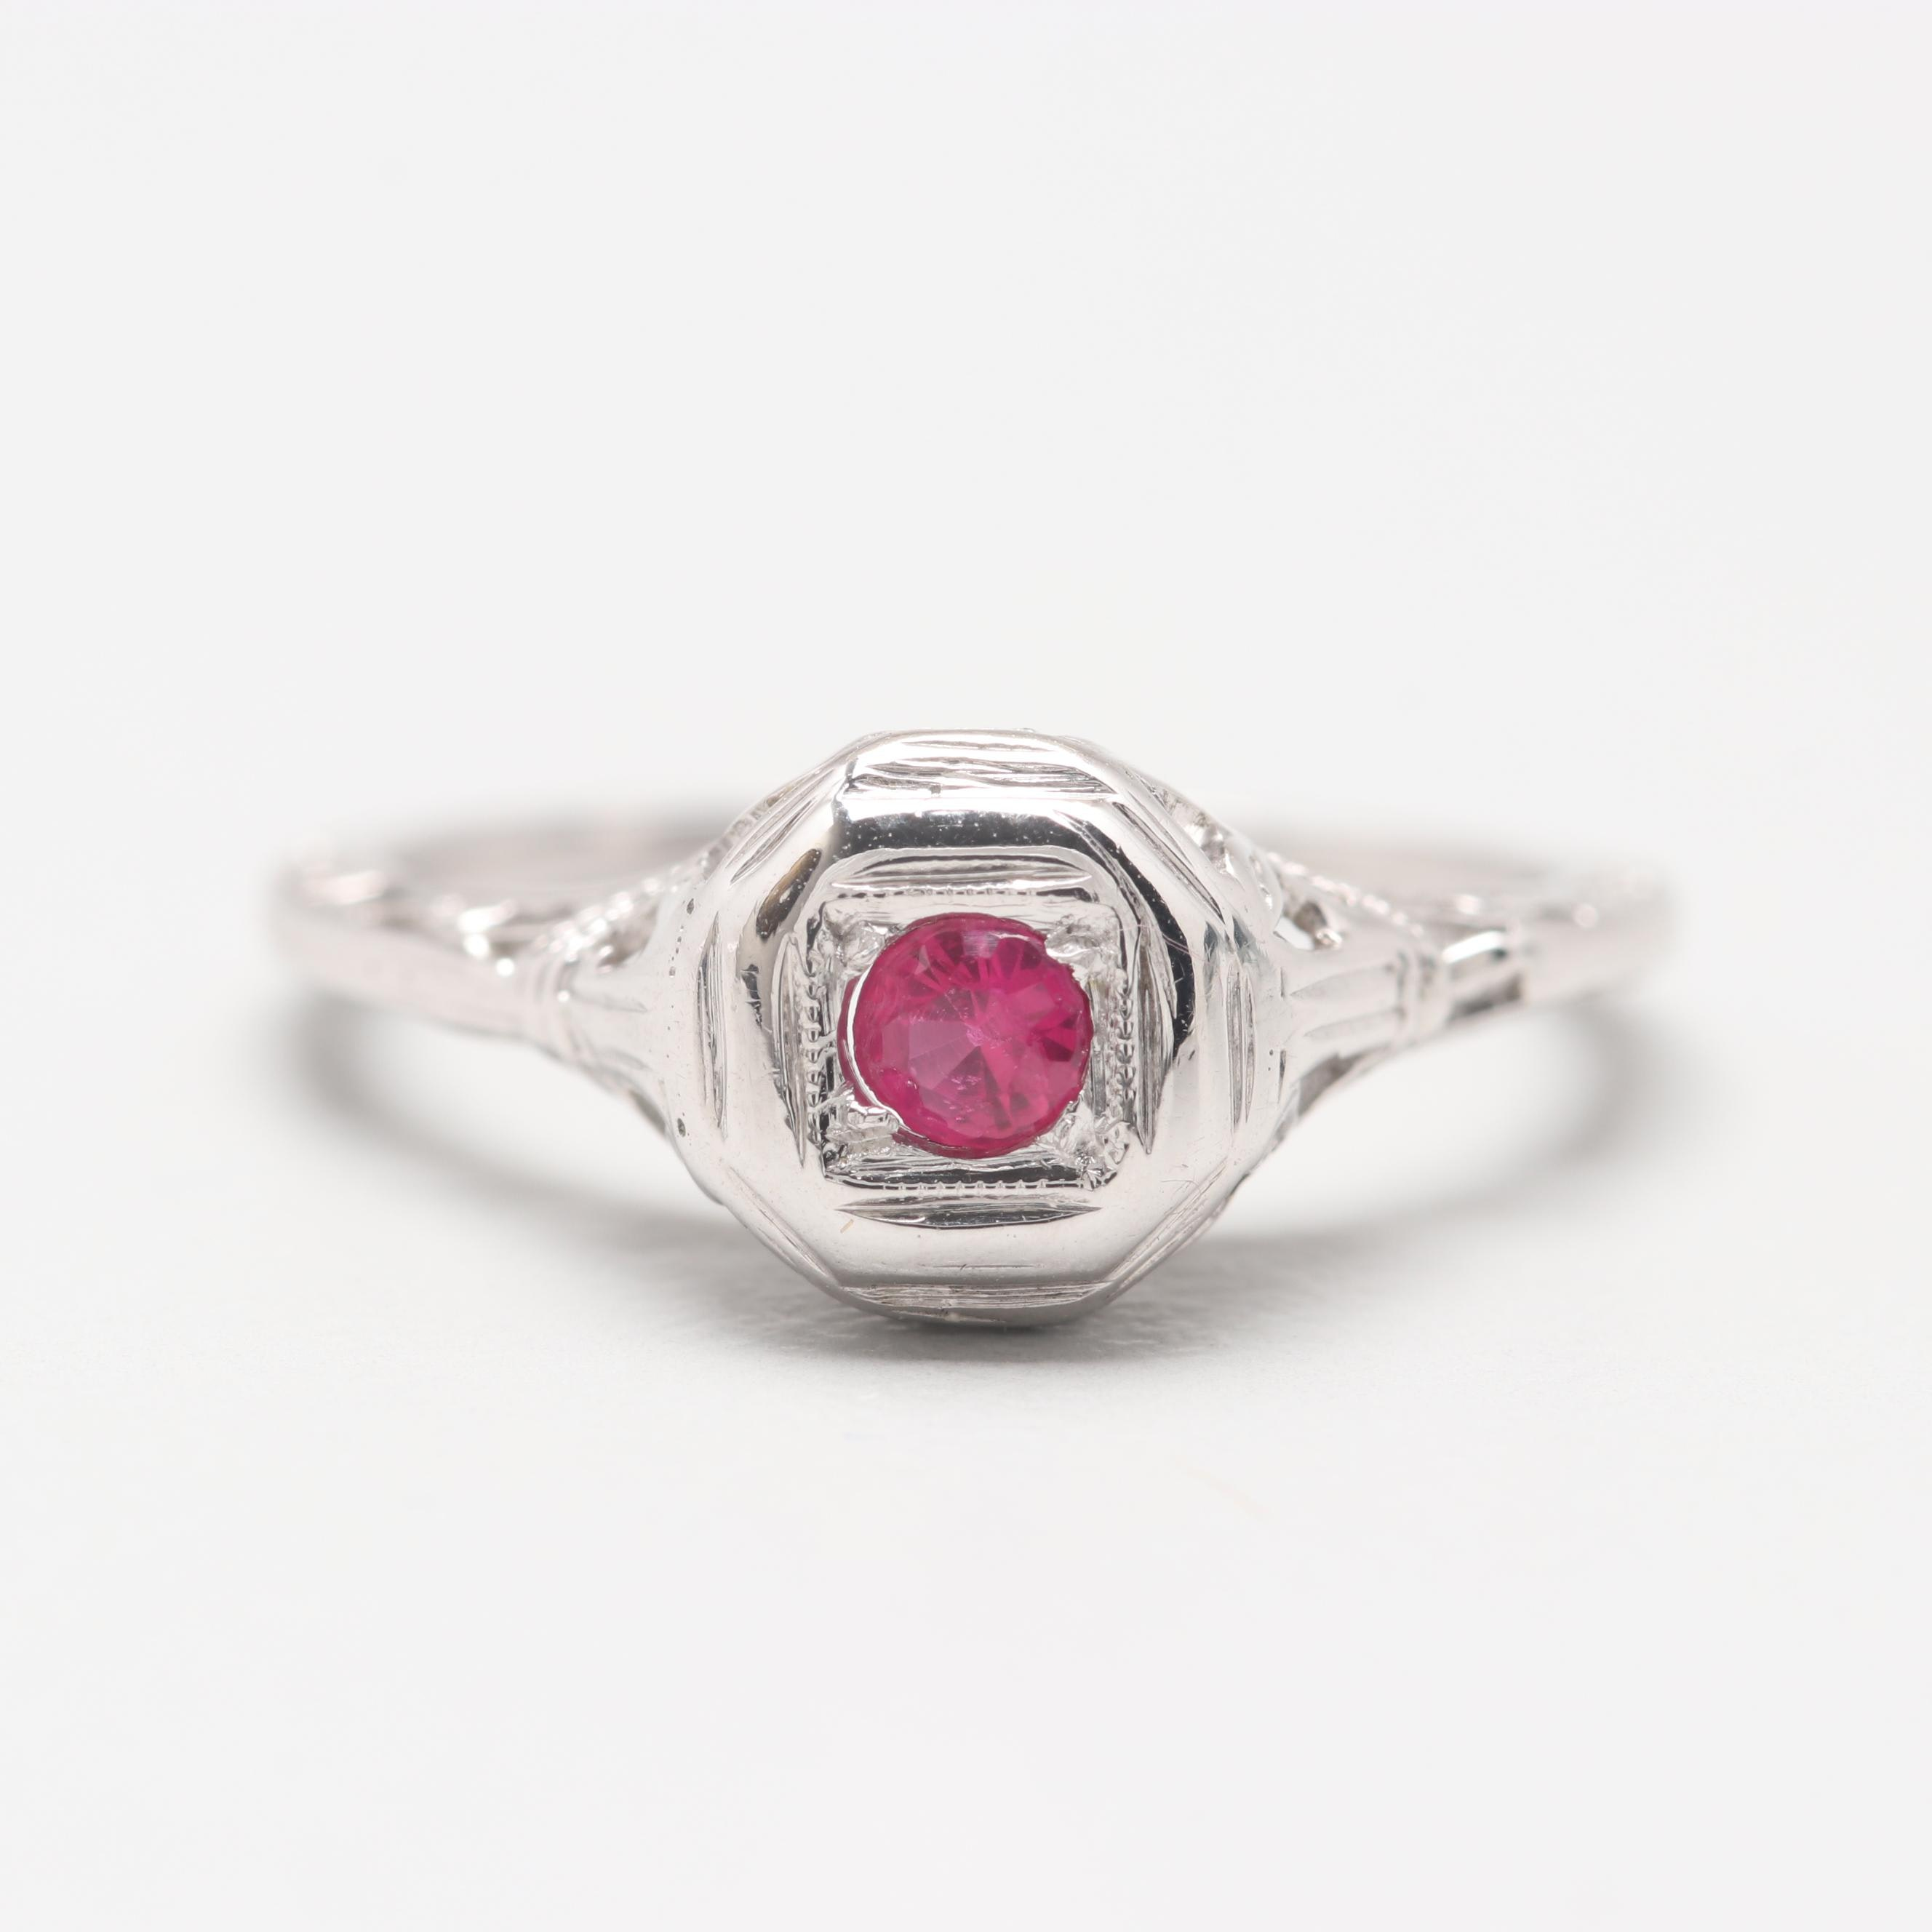 Art Deco 18K White Gold Synthetic Ruby Ring